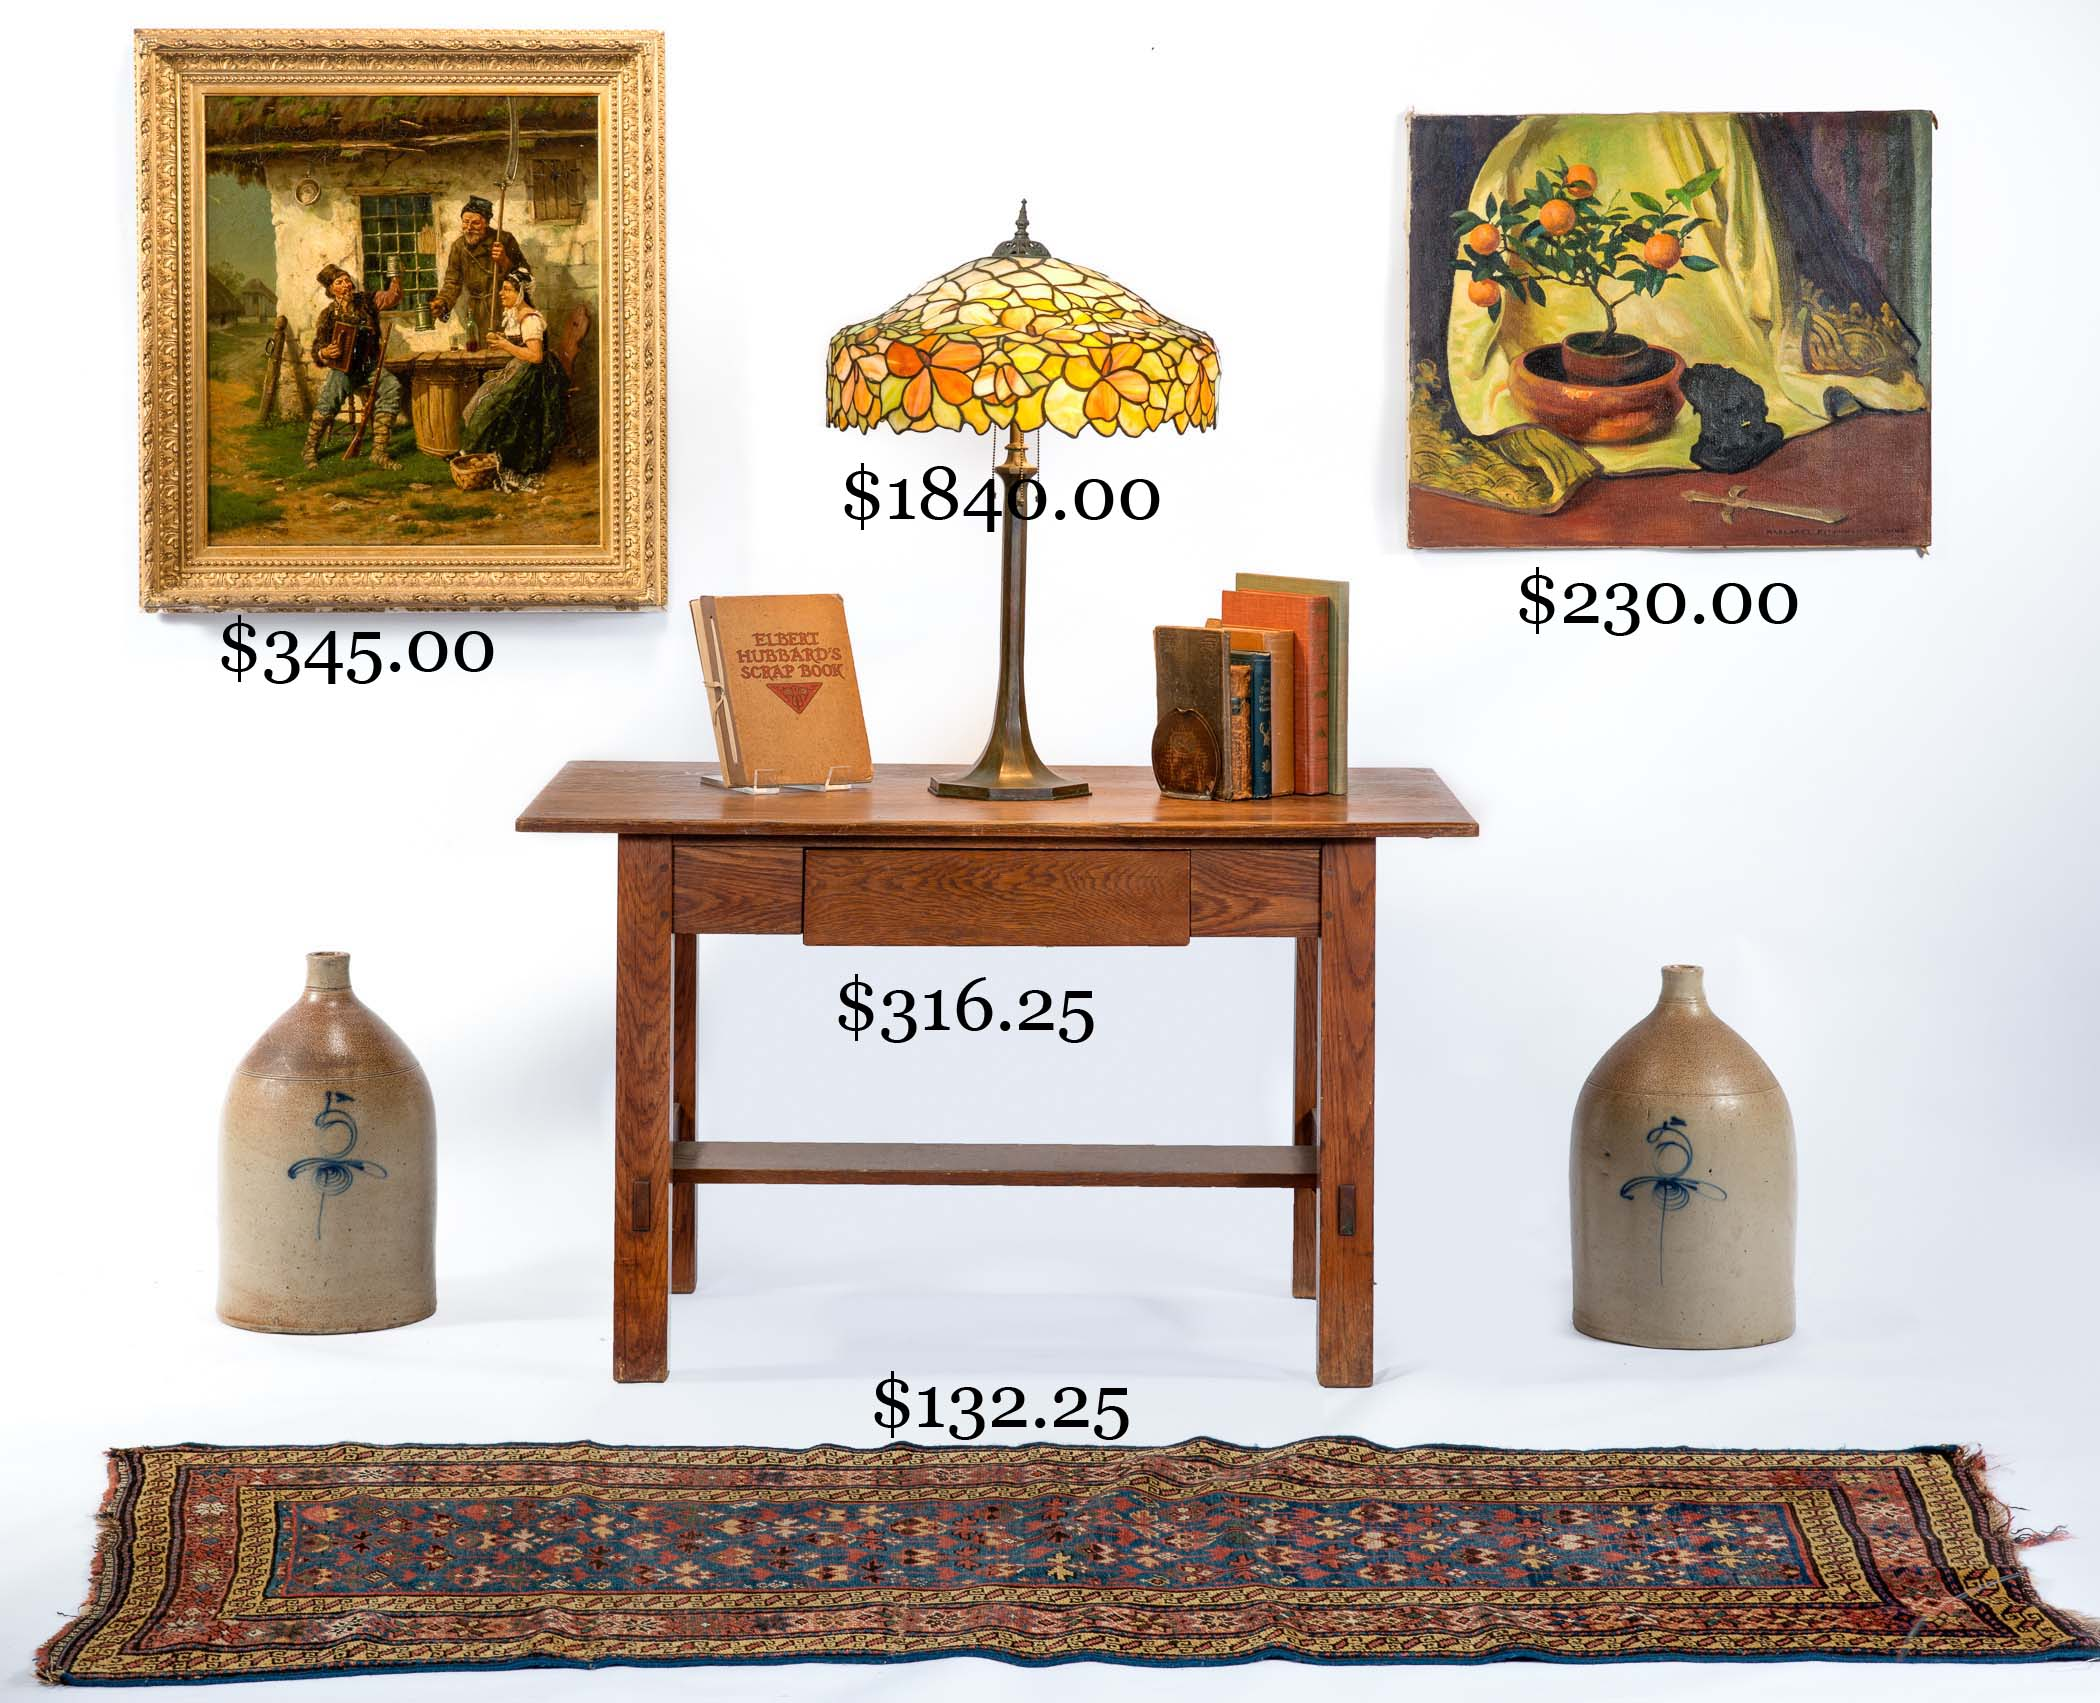 Selling a diverse selection of antiques, period and decorative ...